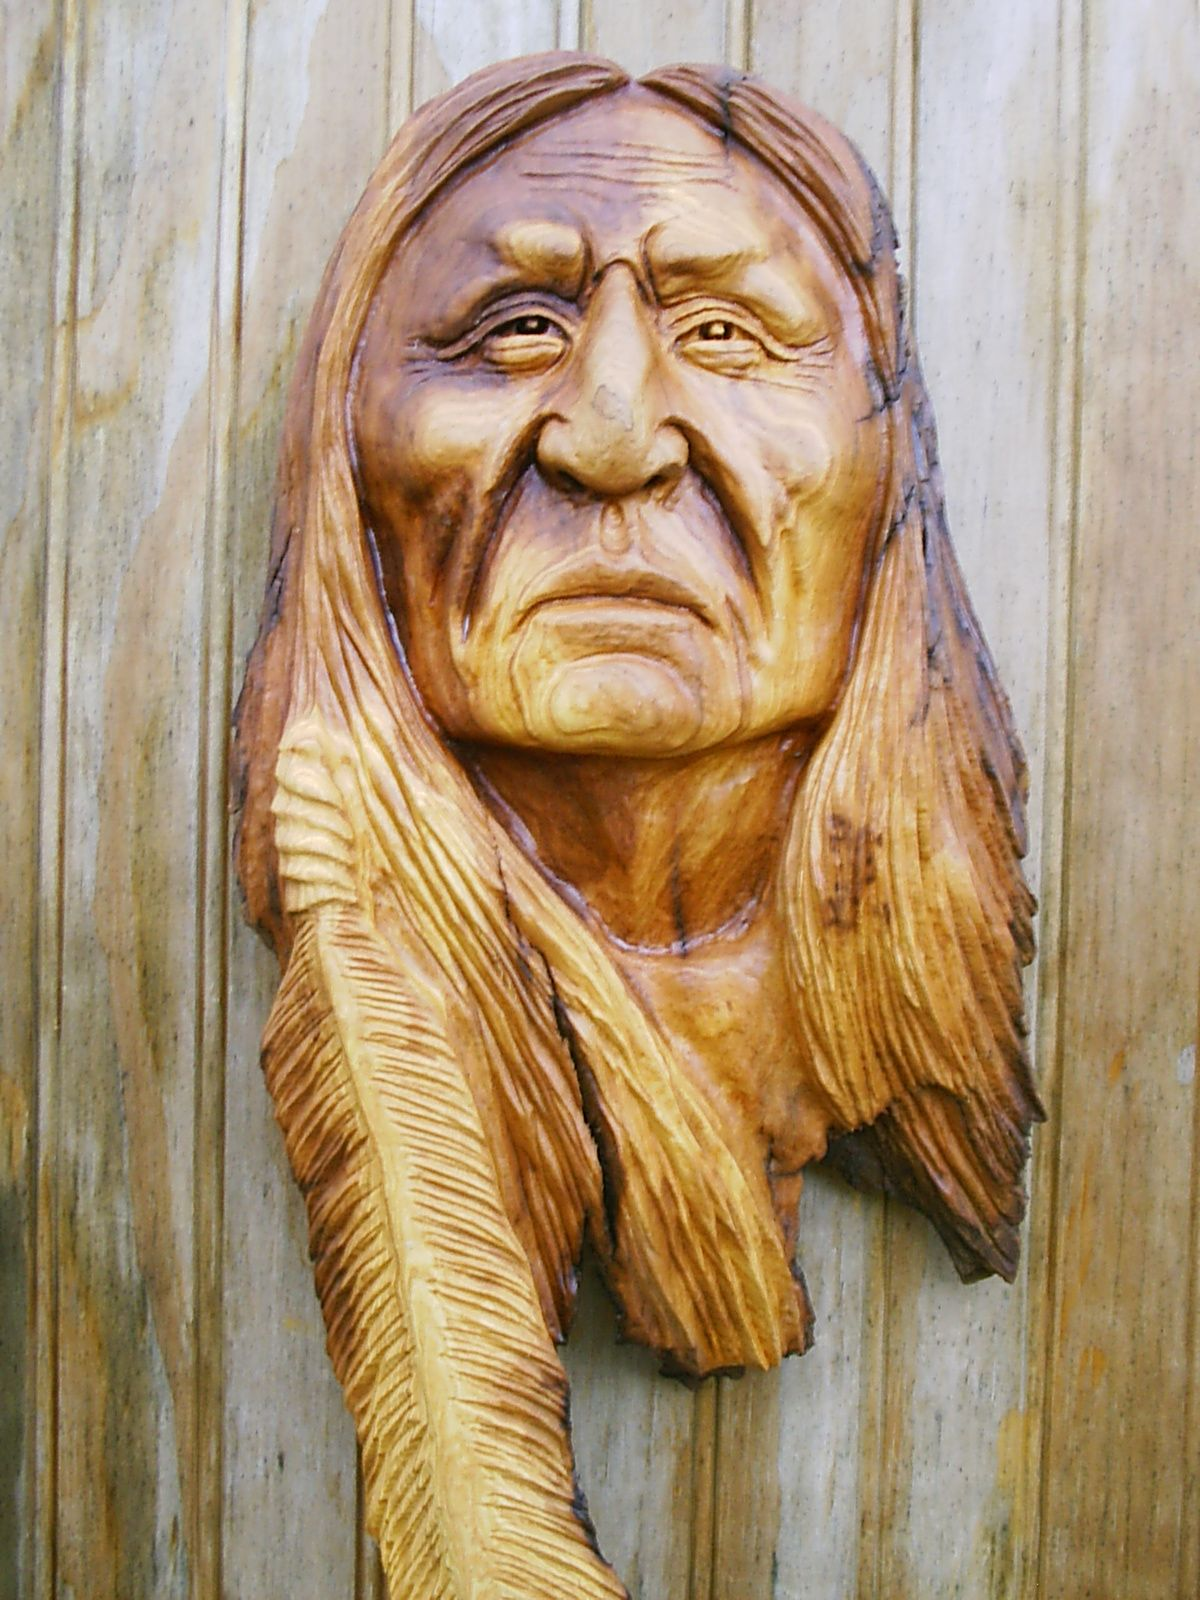 Native american indian wood carvings